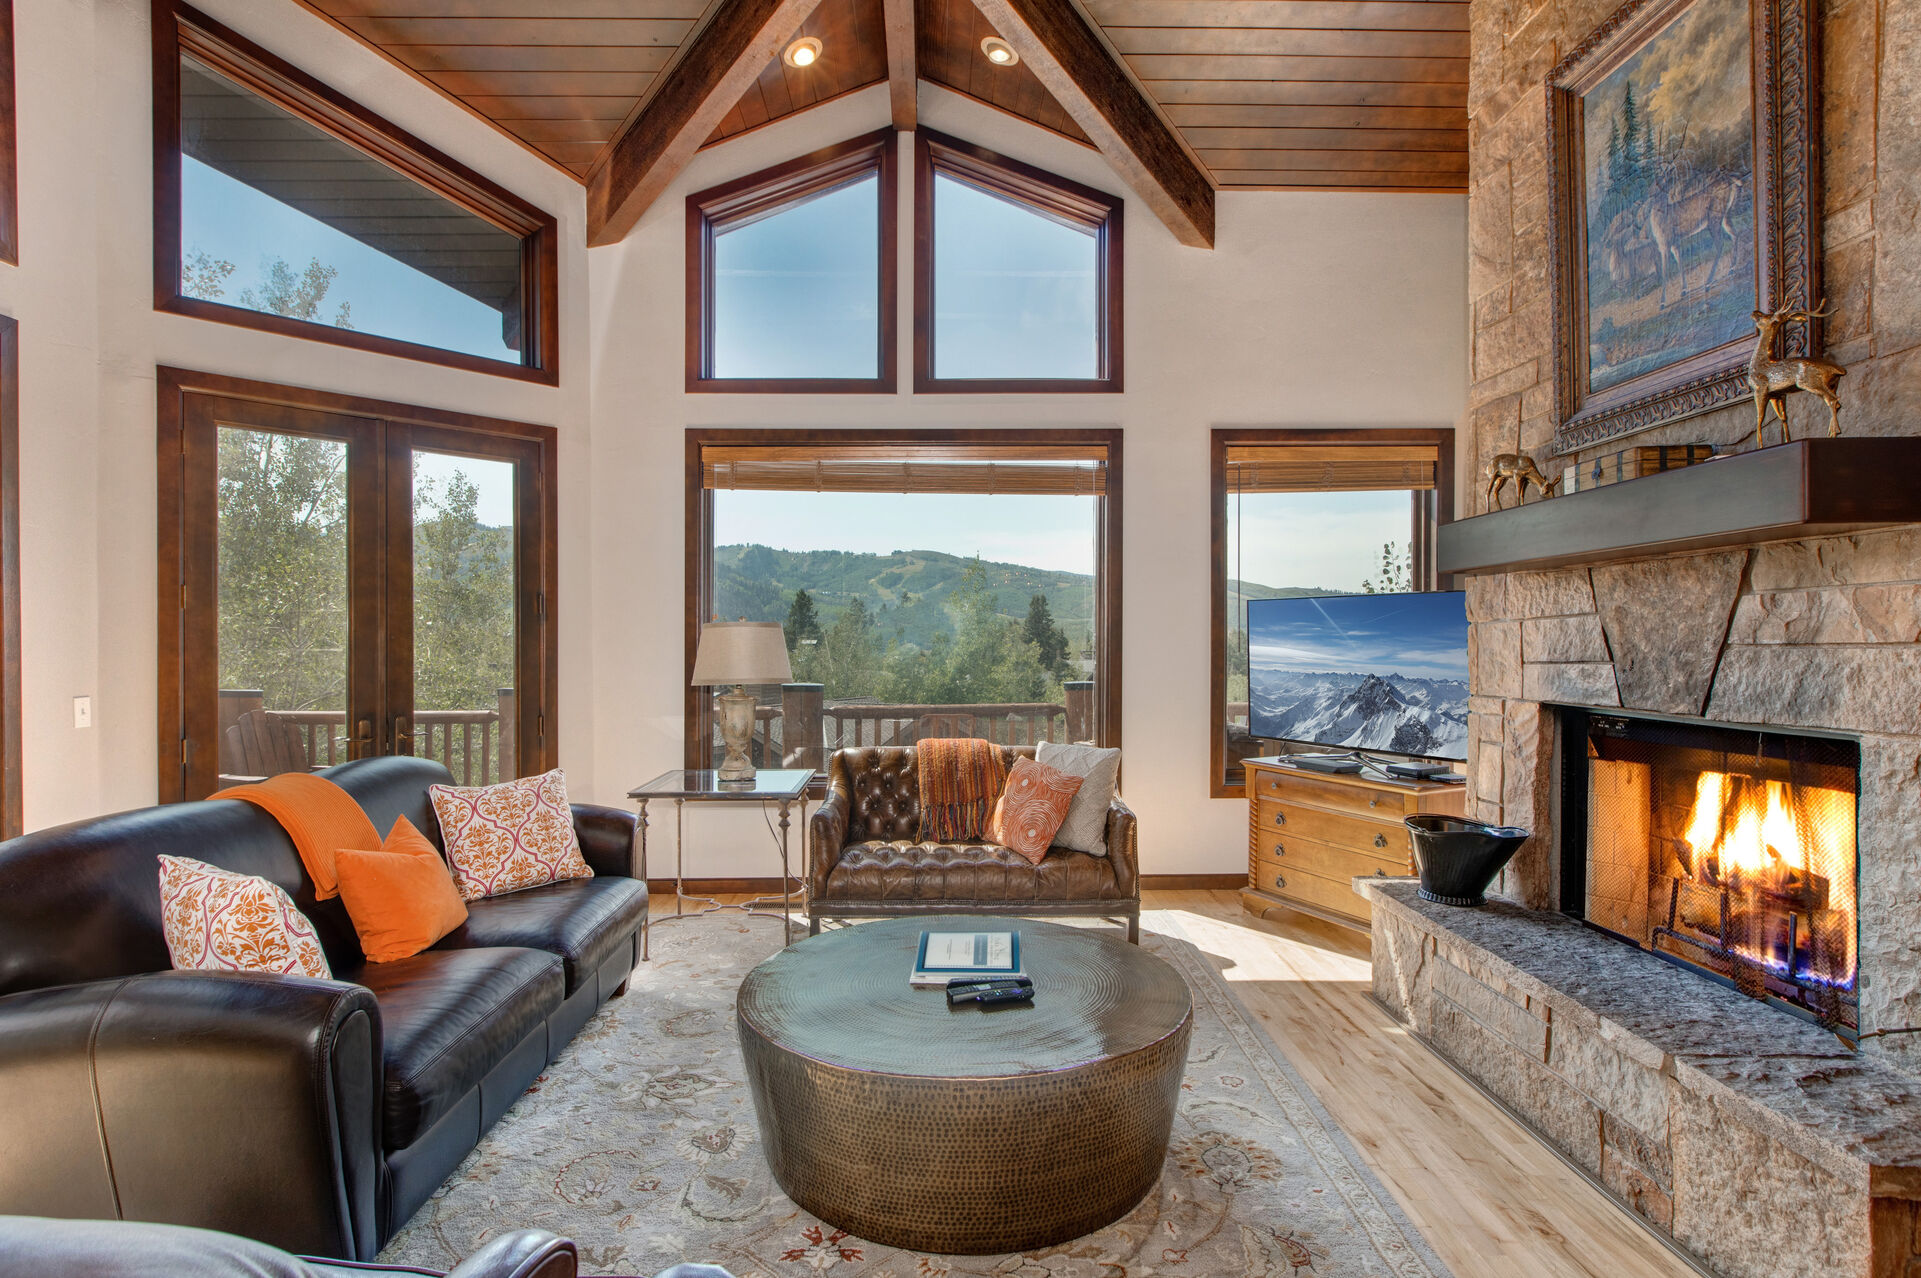 Spacious Living Room Surrounded by Walls of Windows for Natural Light and Deer Valley Views